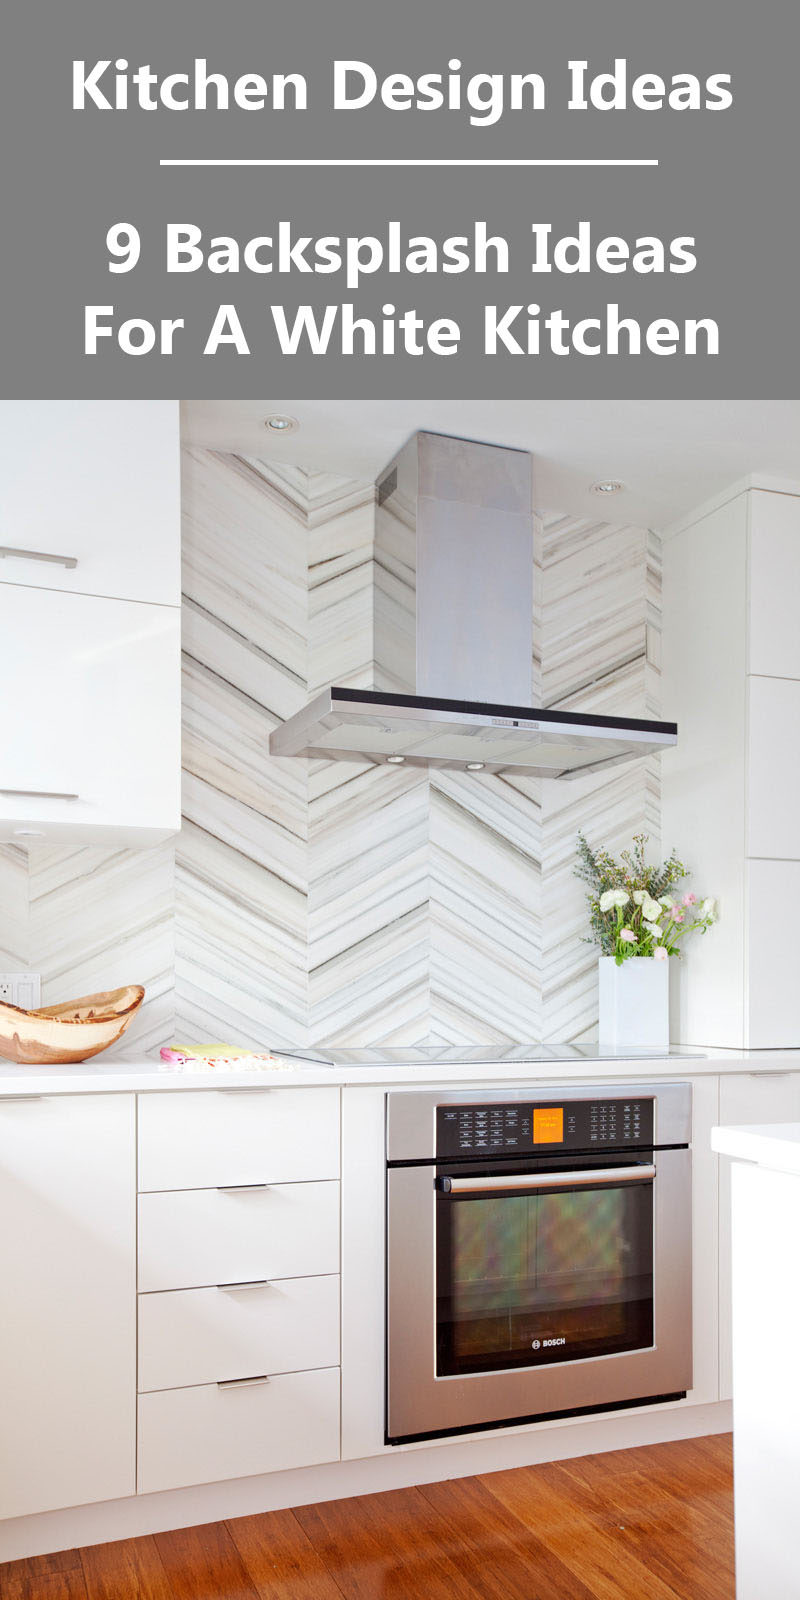 Kitchen Design Ideas 9 Backsplash For A White